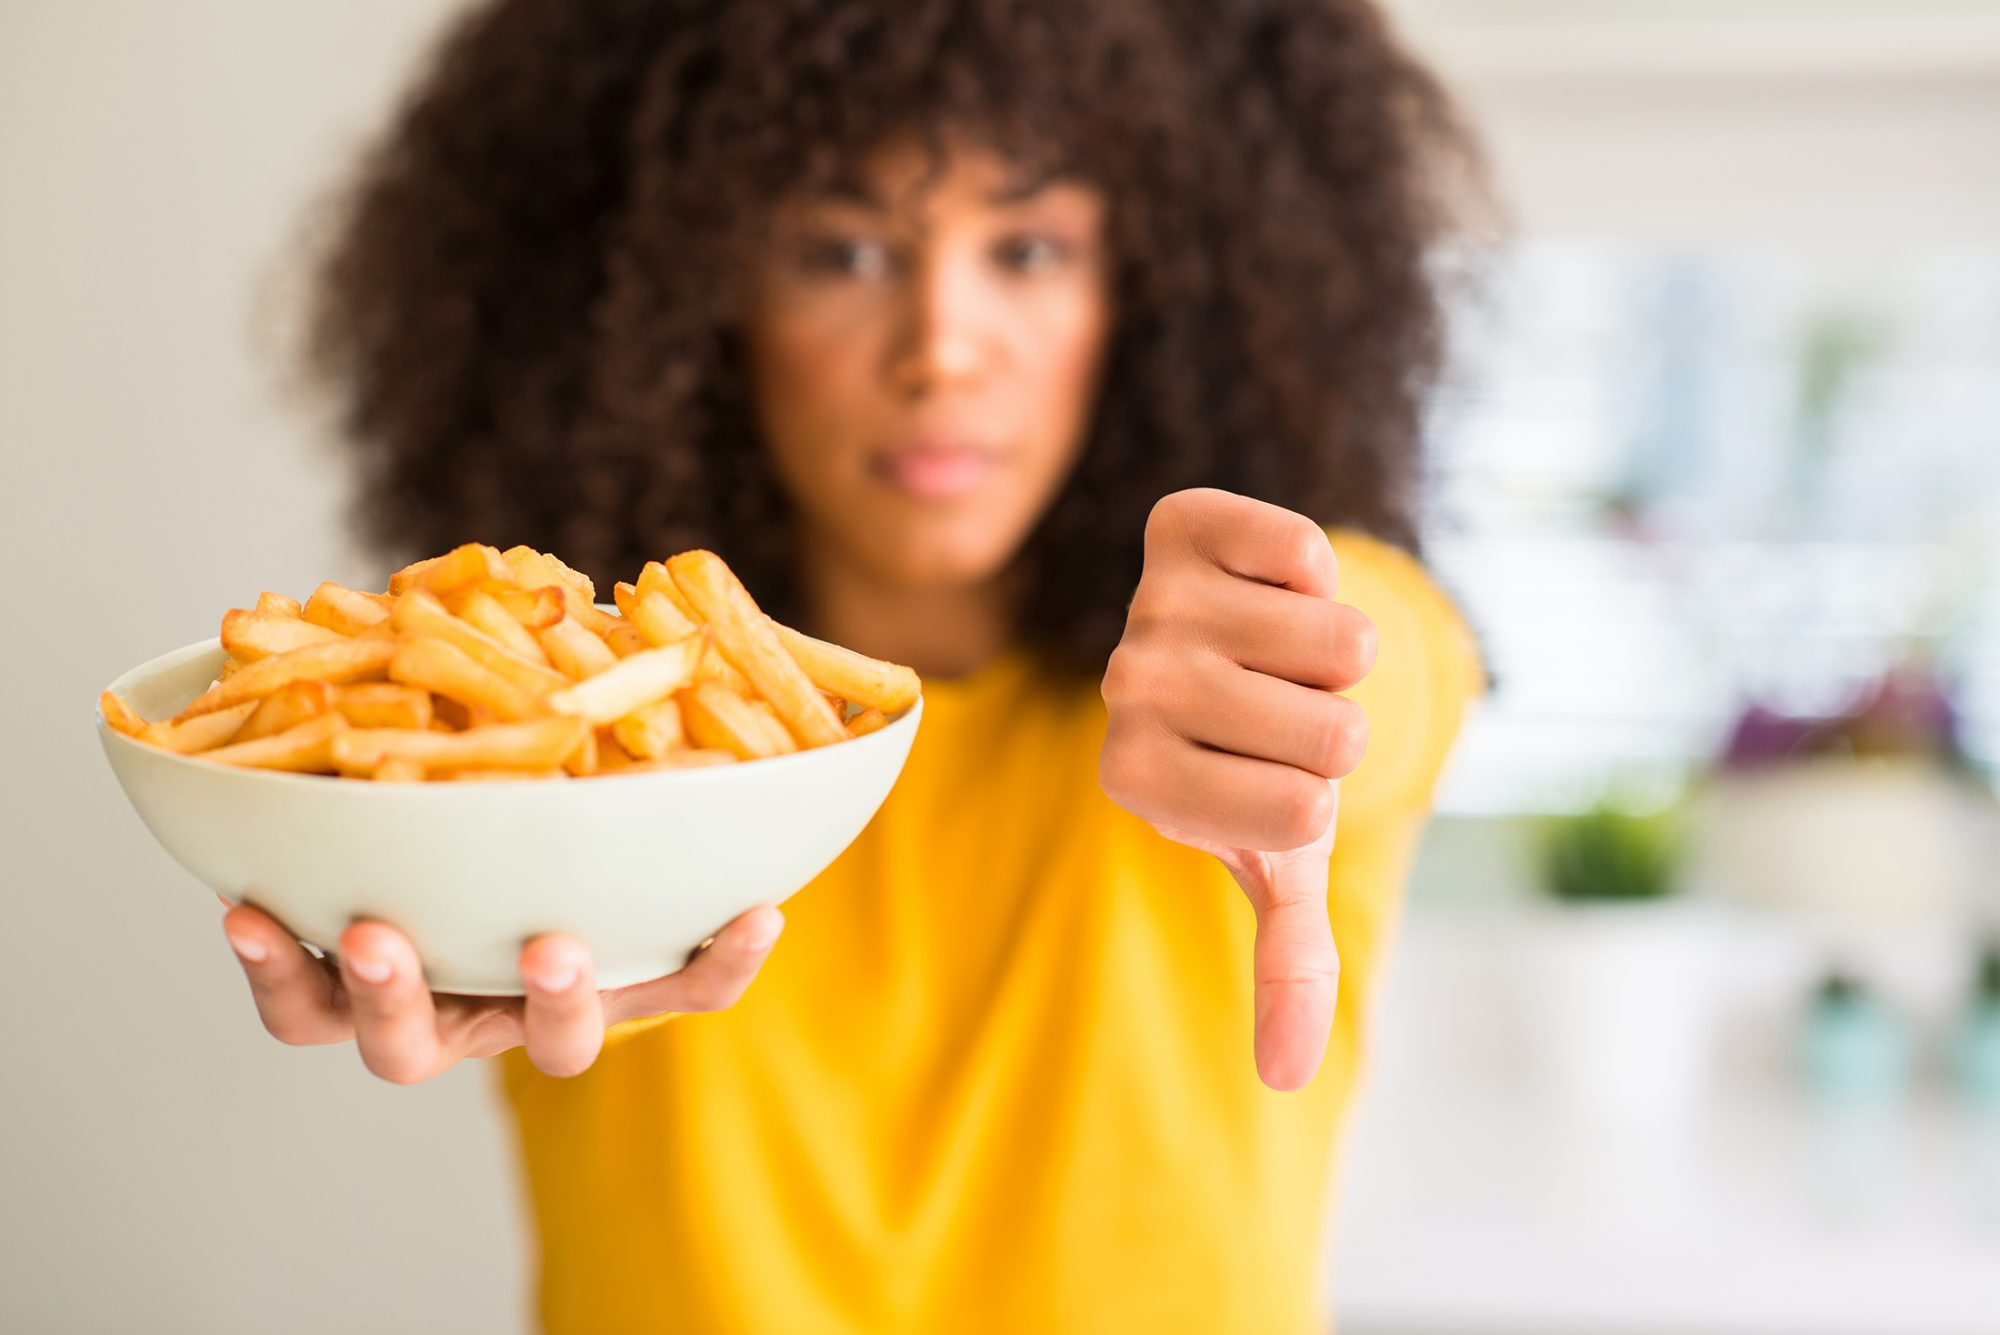 rejecting-french-fries-1043968848.jpg